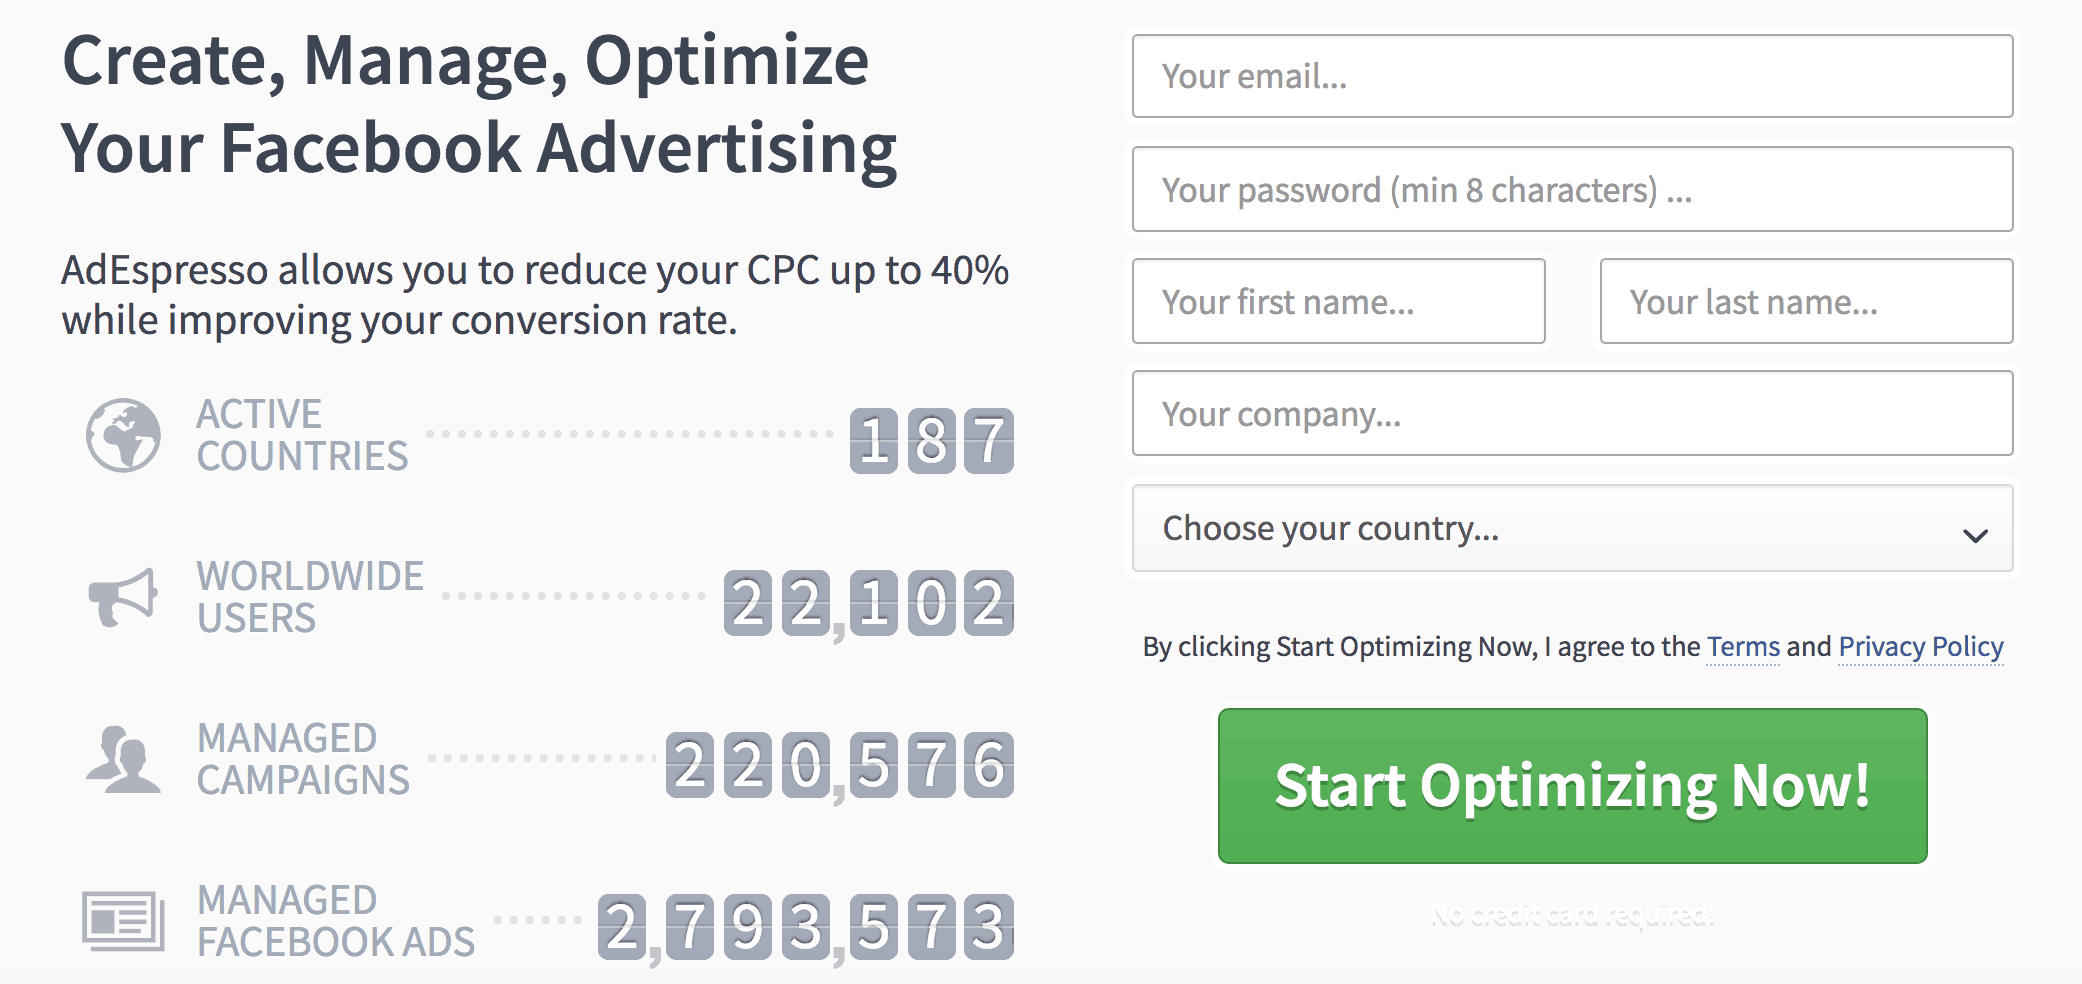 value of numbers in landing page copy ad espresso